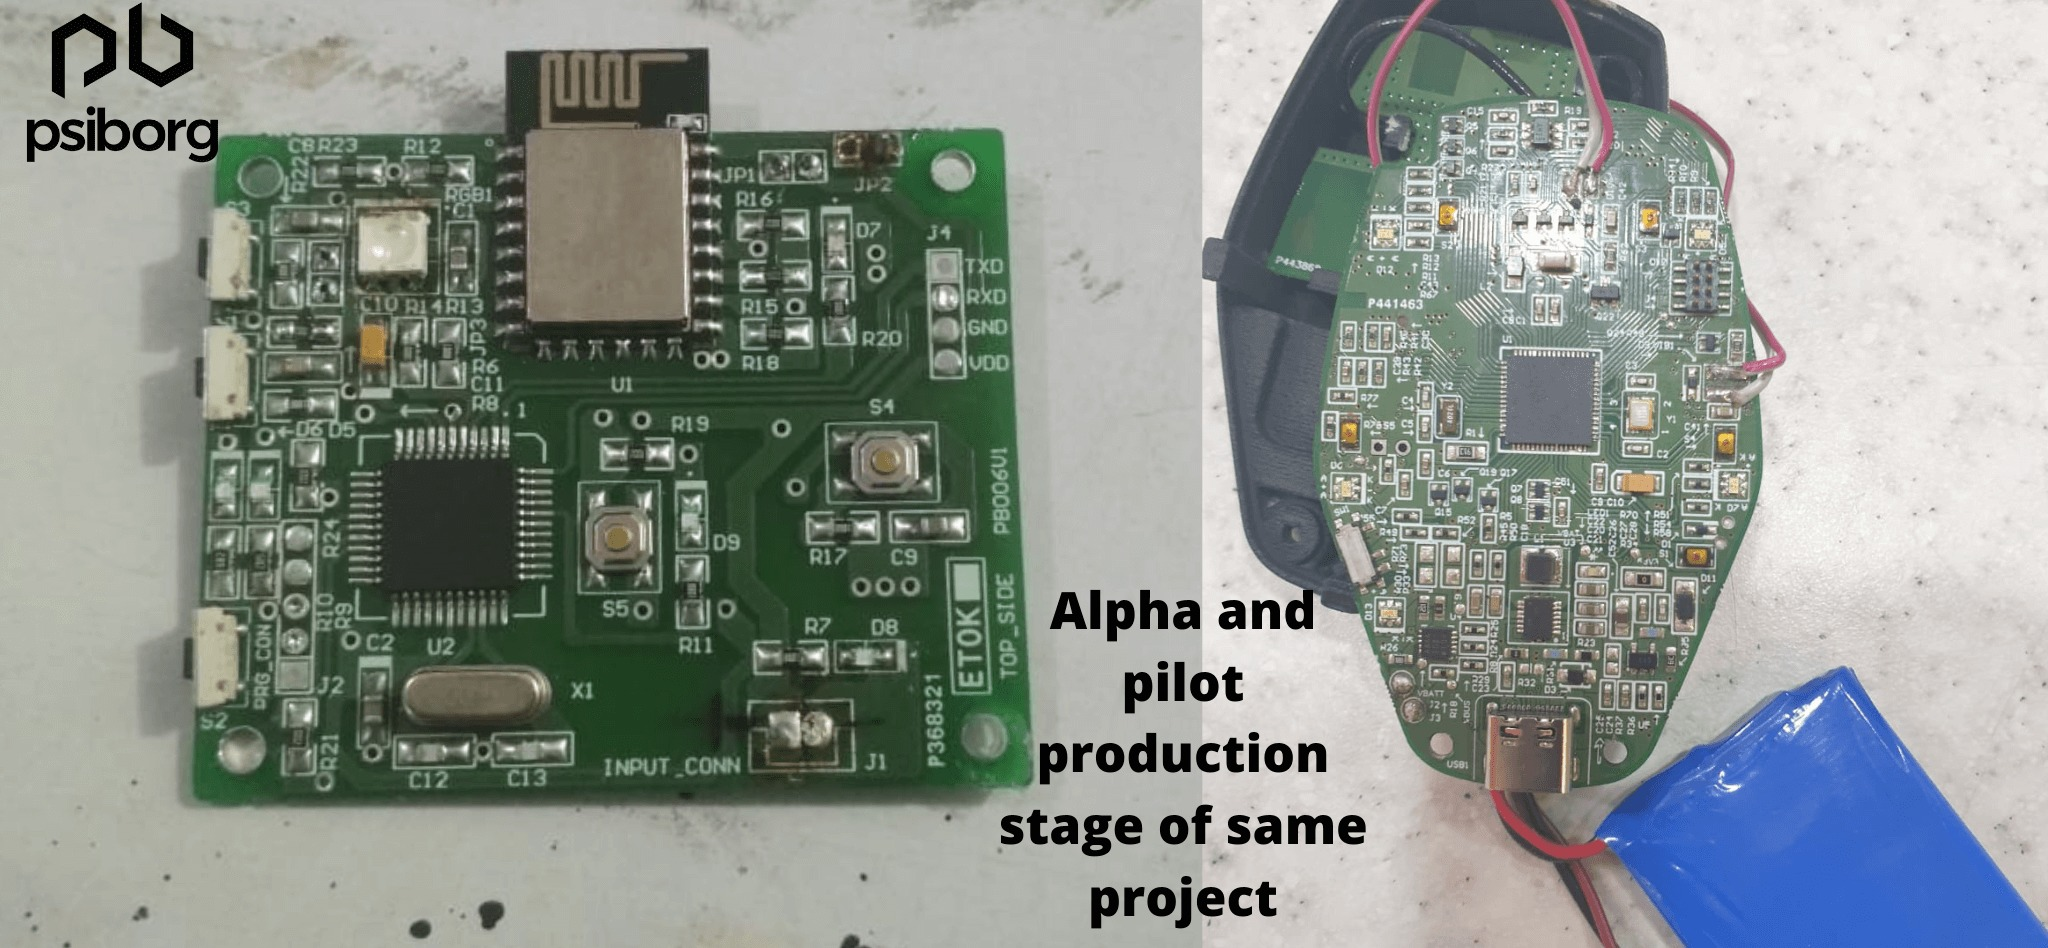 Alpha phase and Pilot production in IoT prototyping